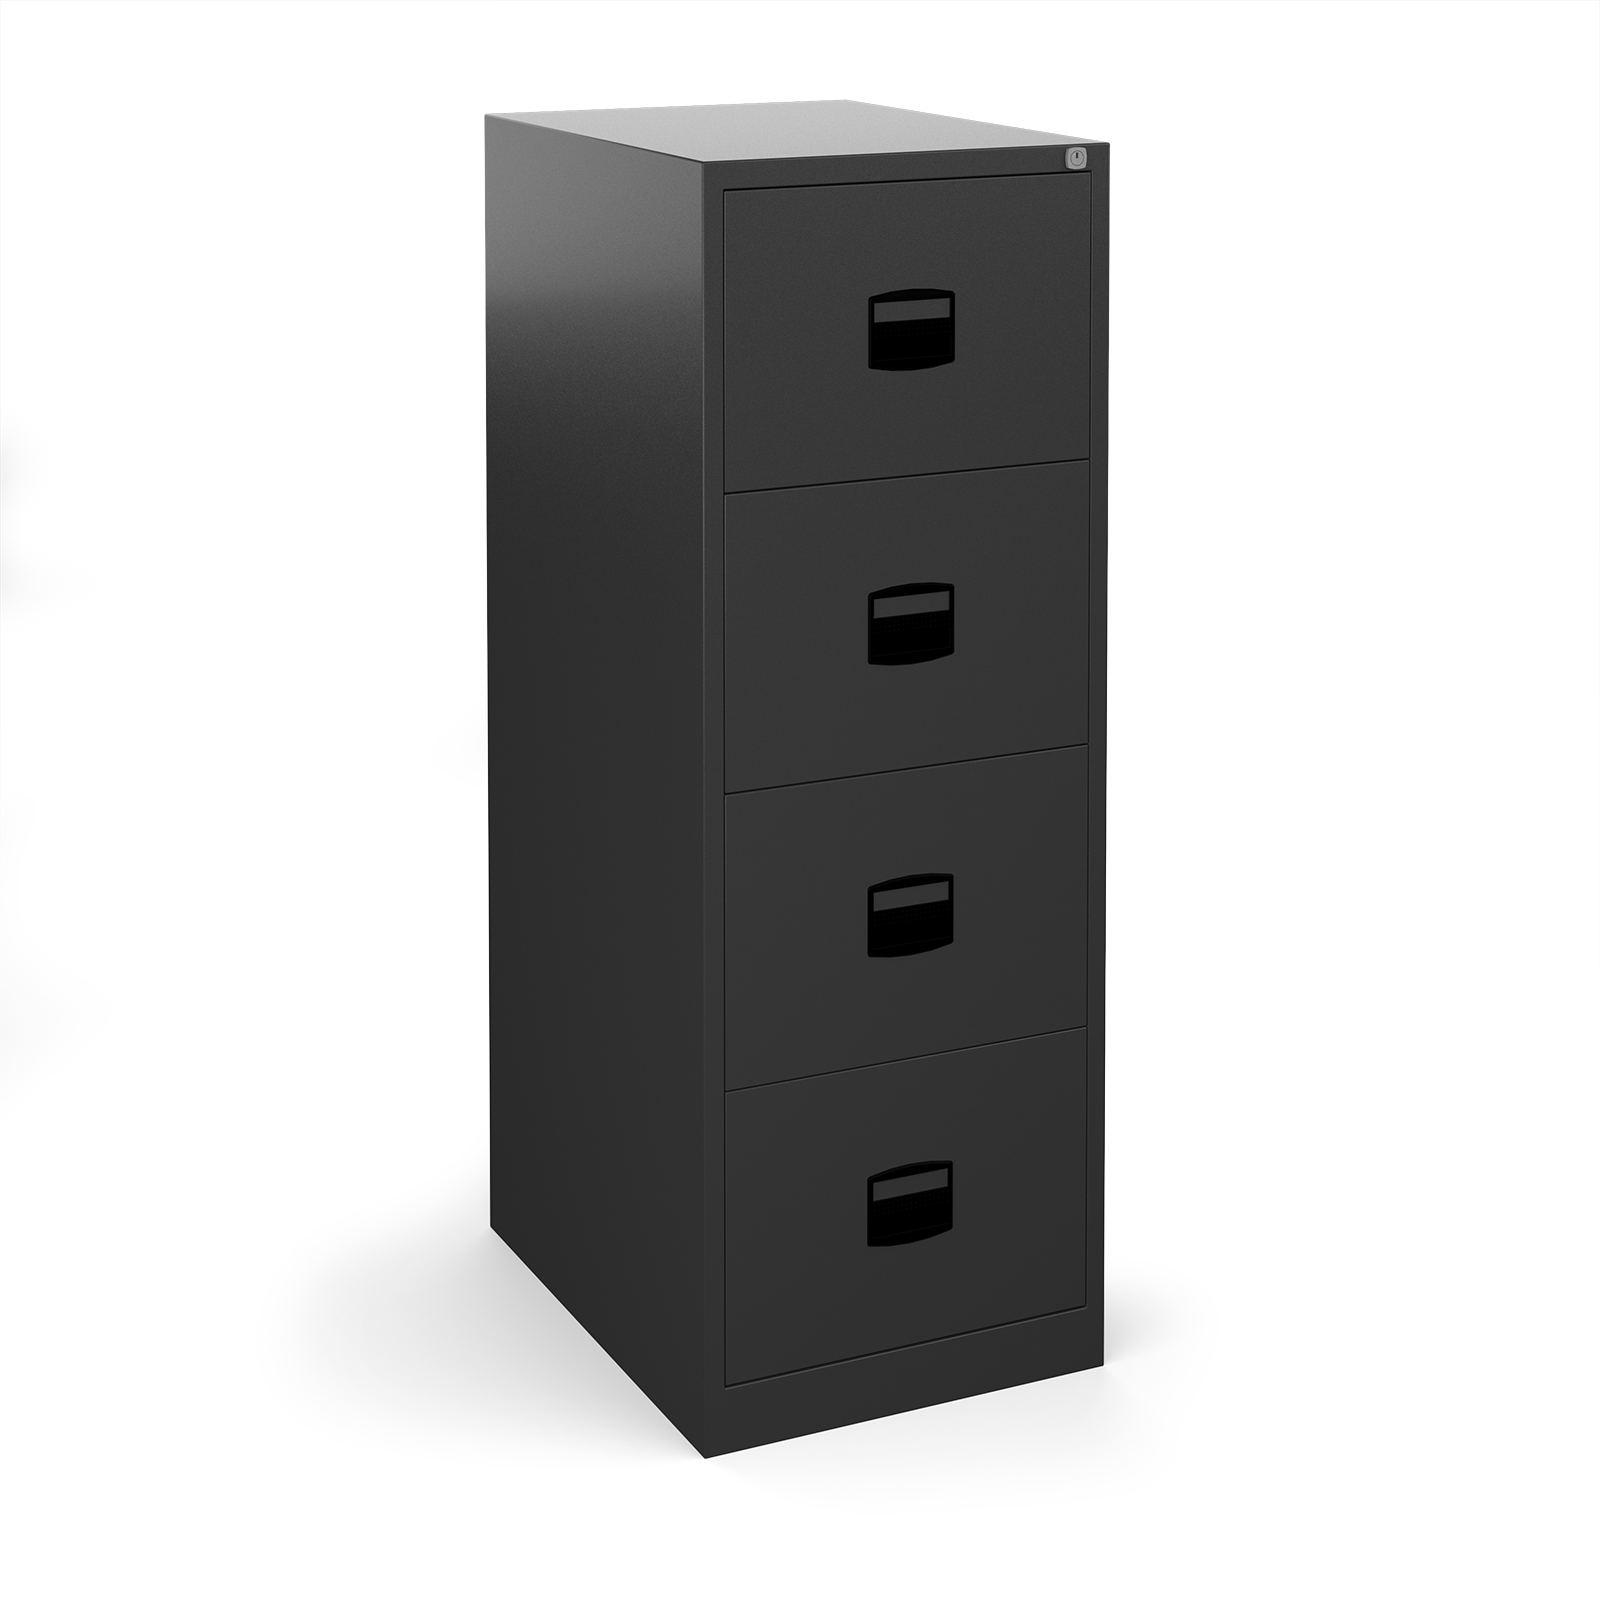 Steel Steel 4 drawer contract filing cabinet 1321mm high - black